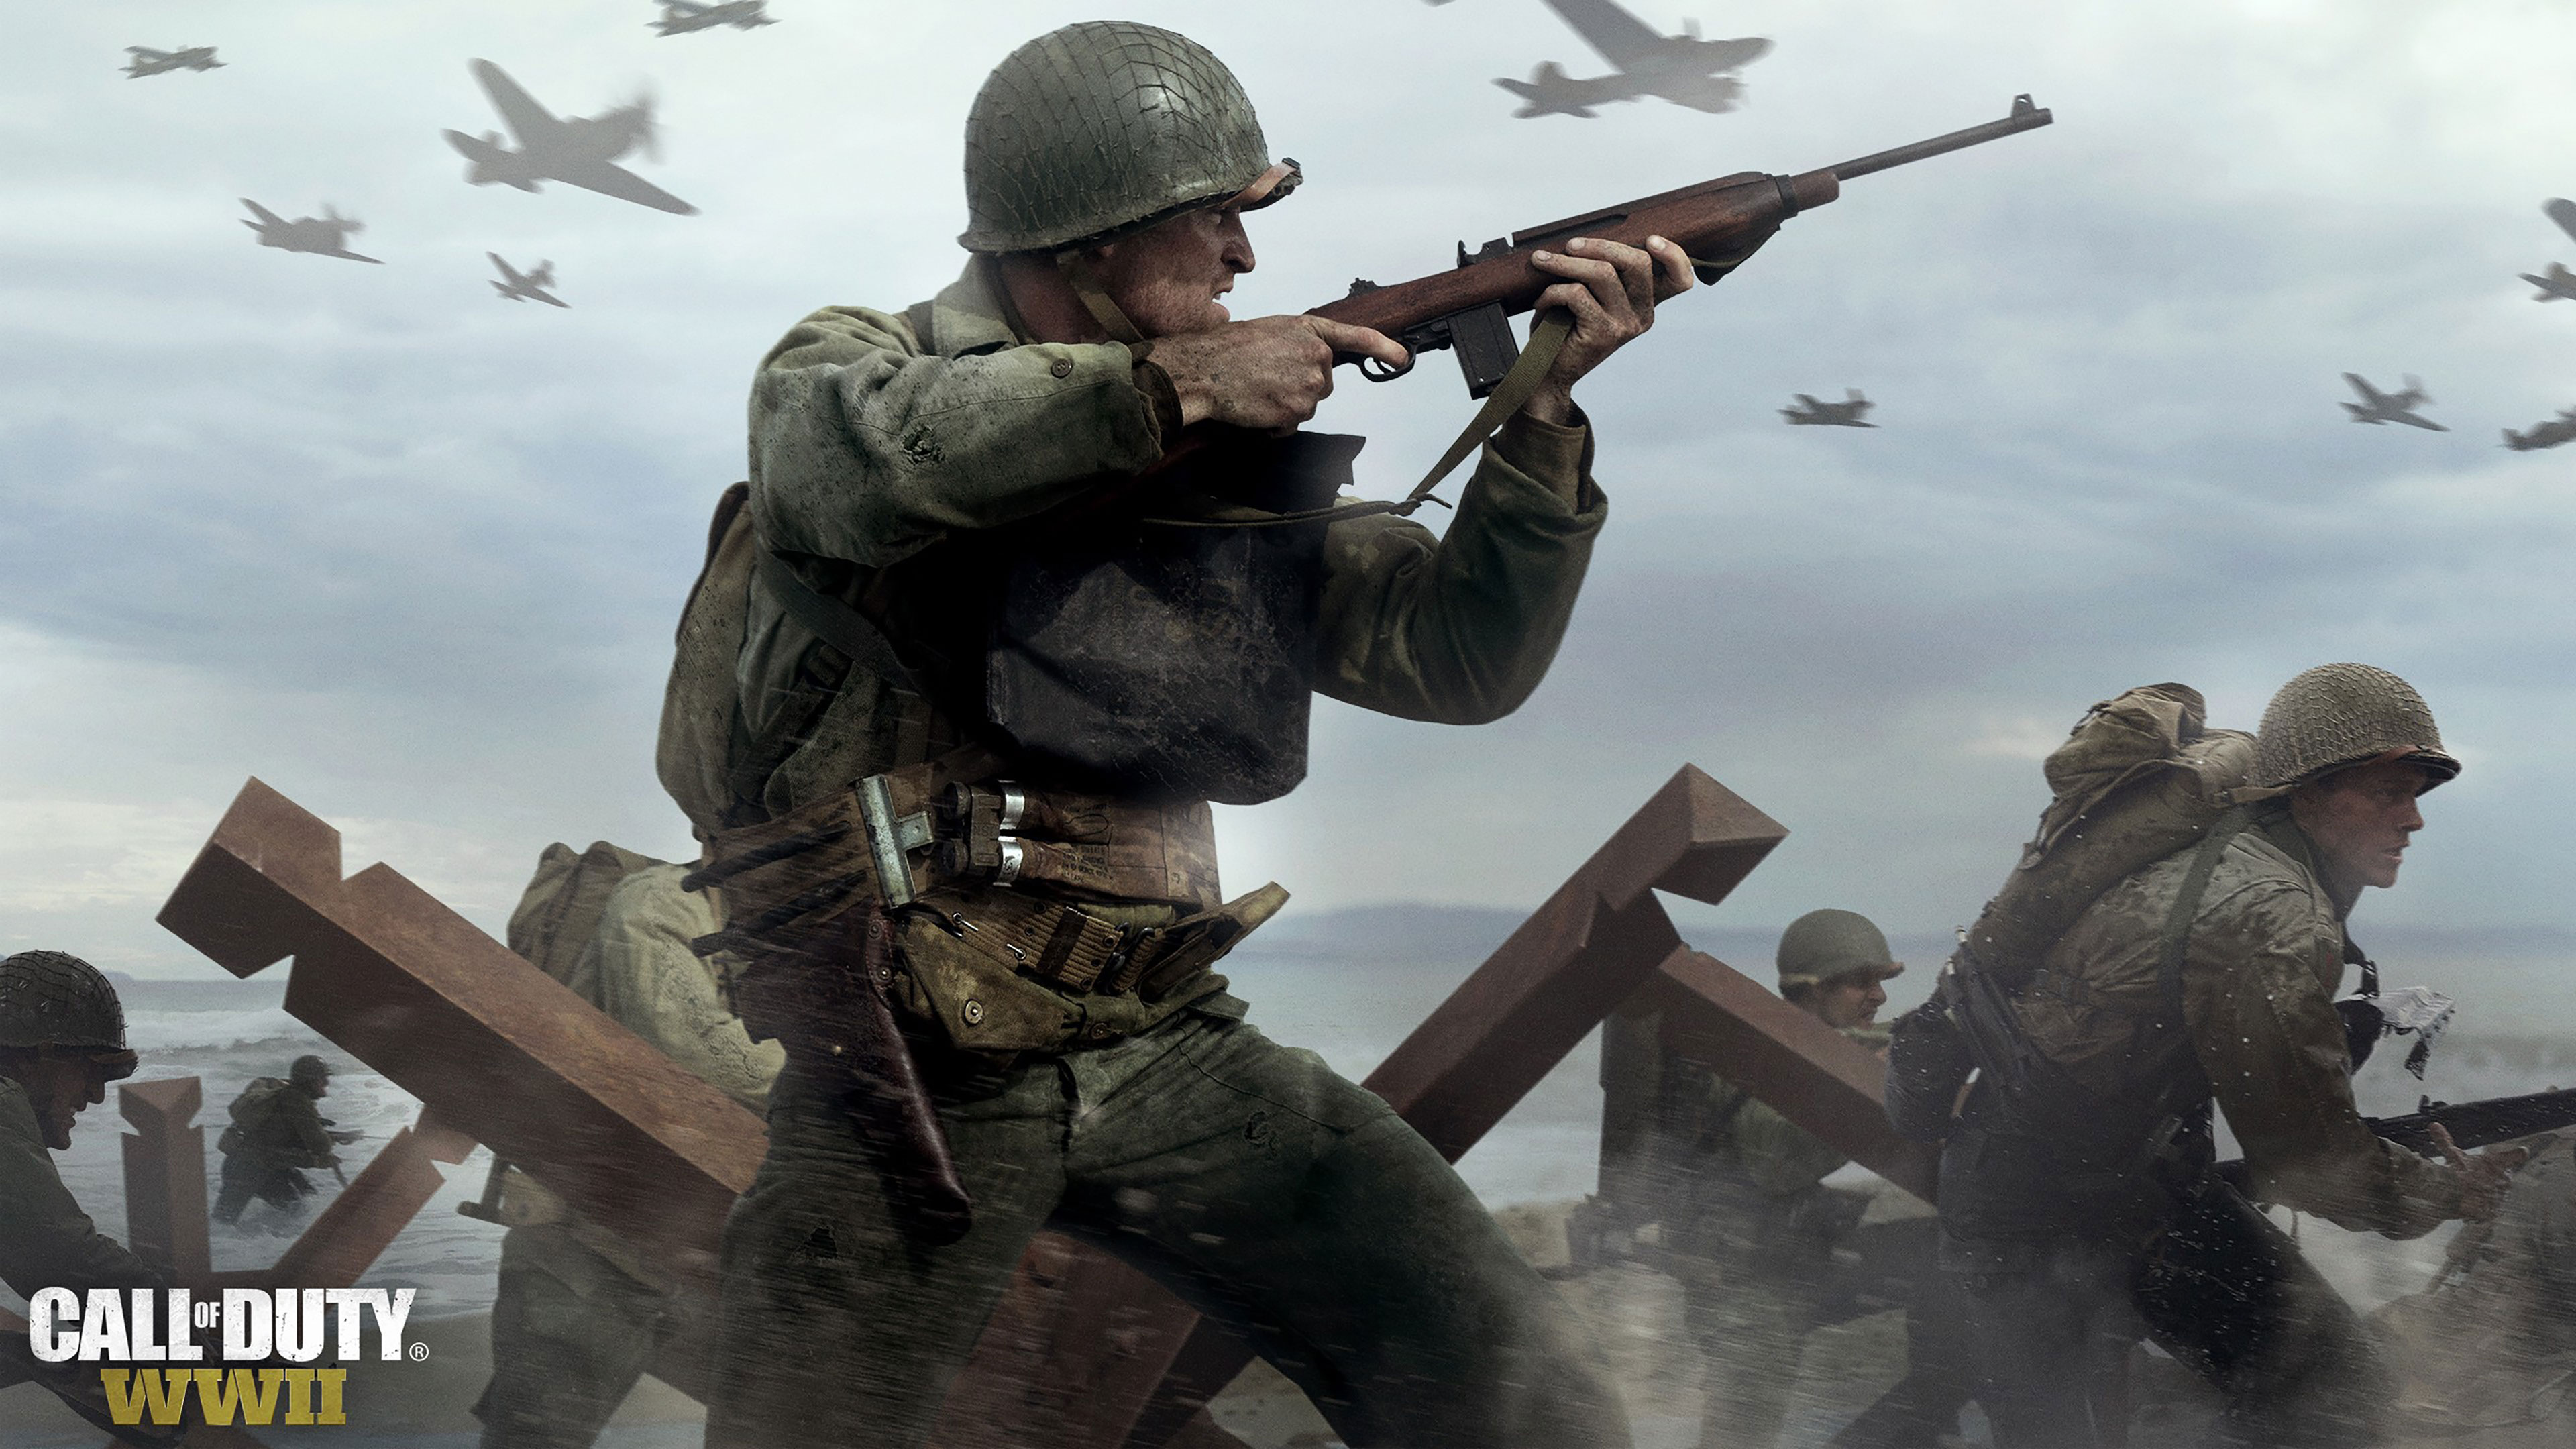 Call Of Duty Wwii Wallpapers In Ultra Hd 4k Gameranx